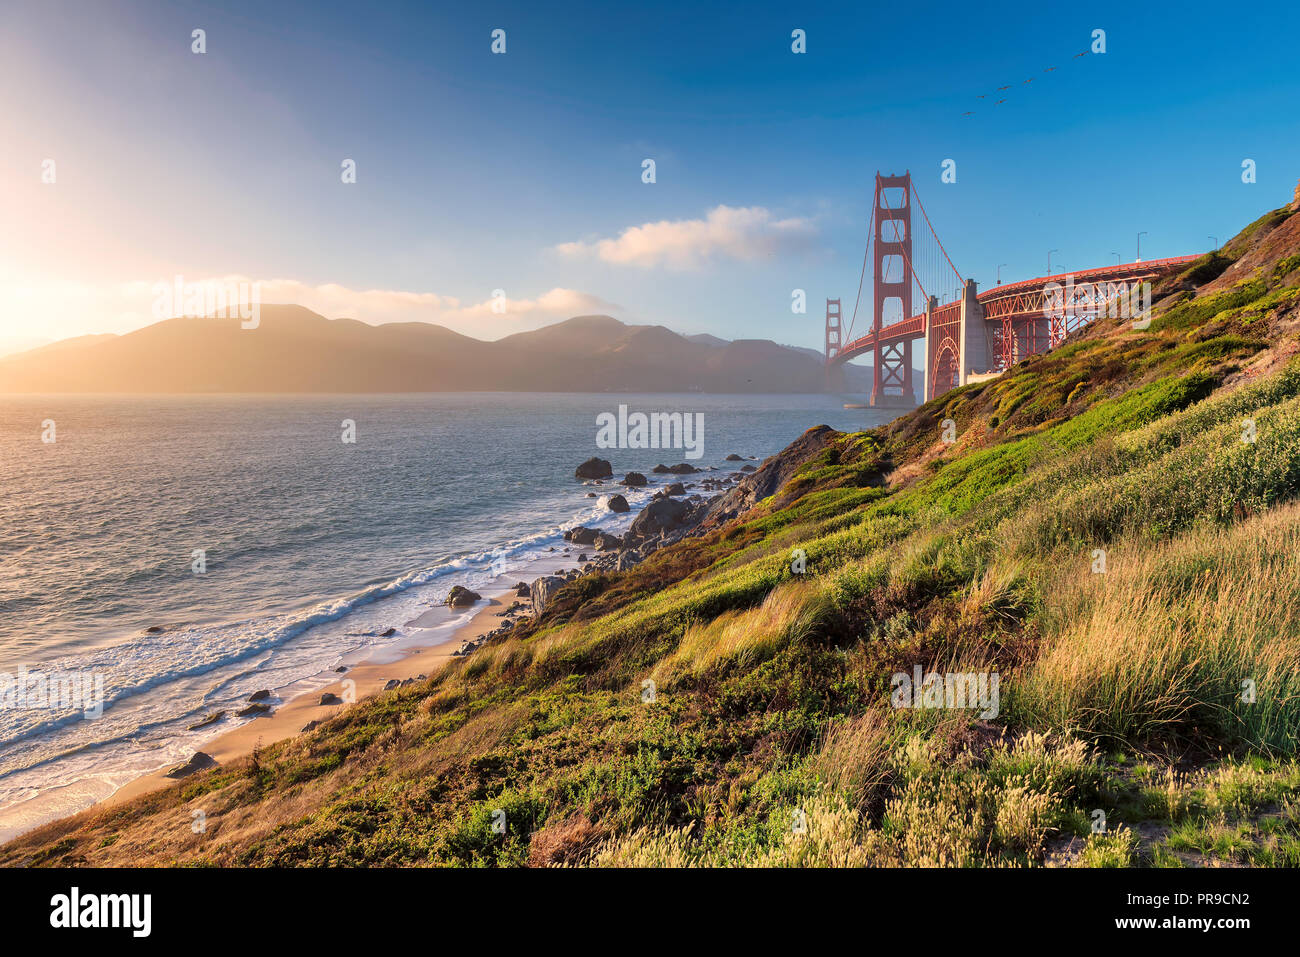 California coast - Golden Gate Bridge at sunset in San Francisco - Stock Image